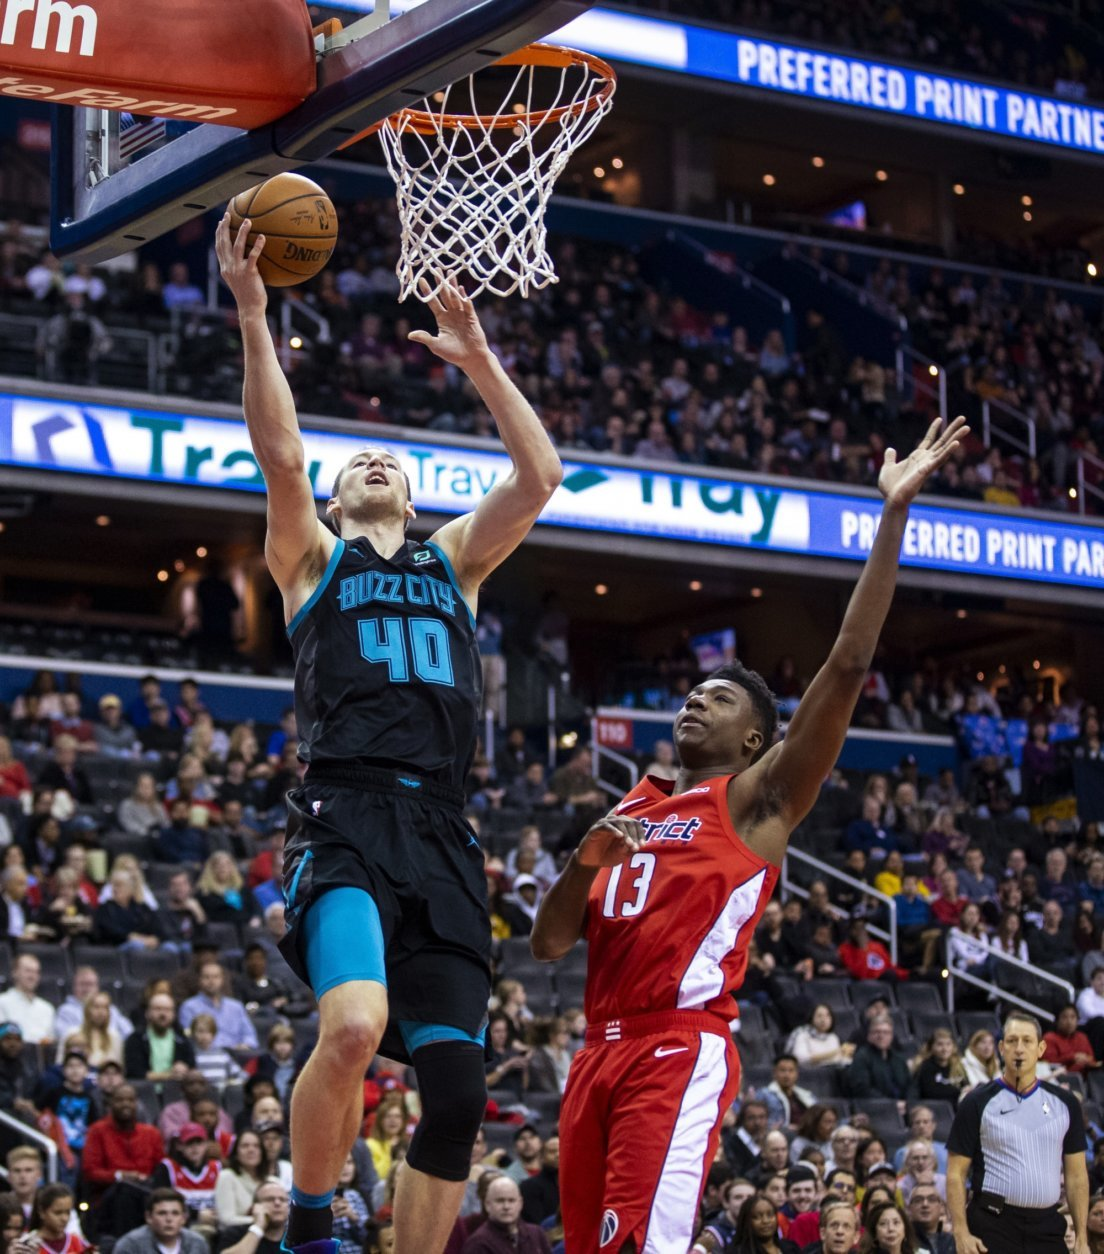 Charlotte Hornets center Cody Zeller (40) makes a layup past Washington Wizards center Thomas Bryant (13) during the first half of an NBA basketball game Saturday, Dec. 29, 2018, in Washington. (AP Photo/Al Drago)